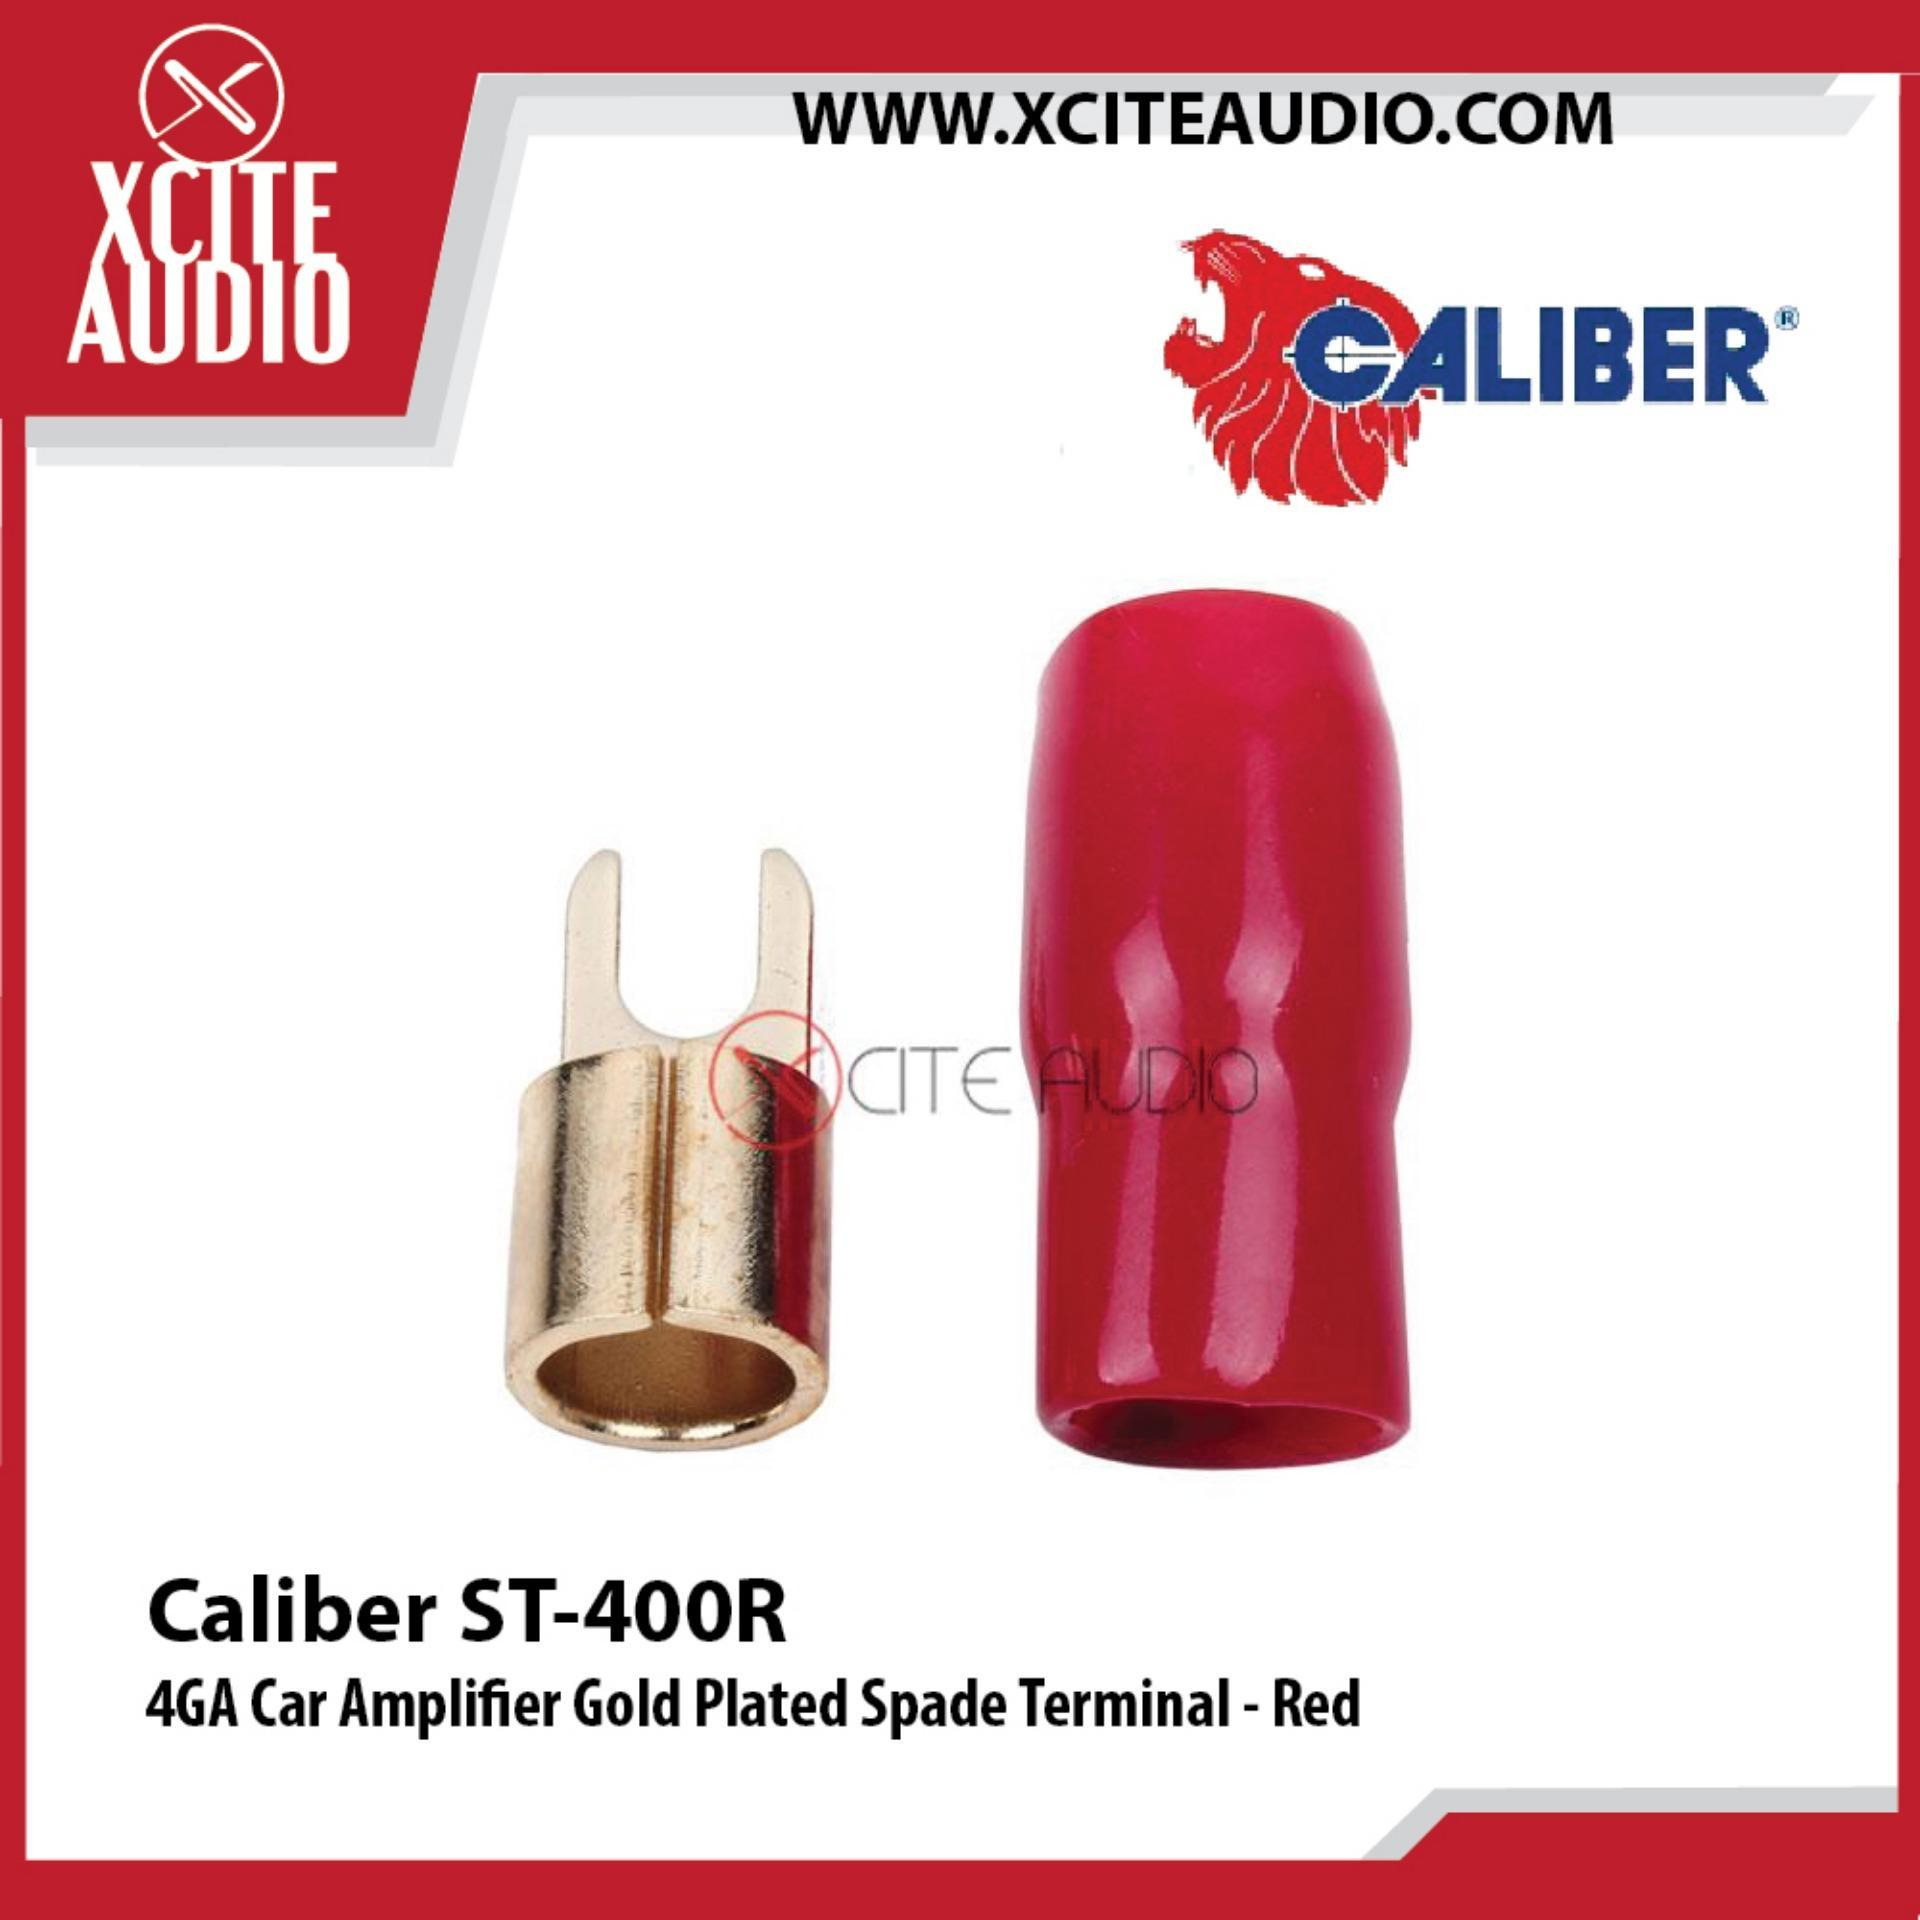 Caliber ST-400R 4GA Car Amplifier Gold Plated Spade Terminal - Red - Xcite Audio